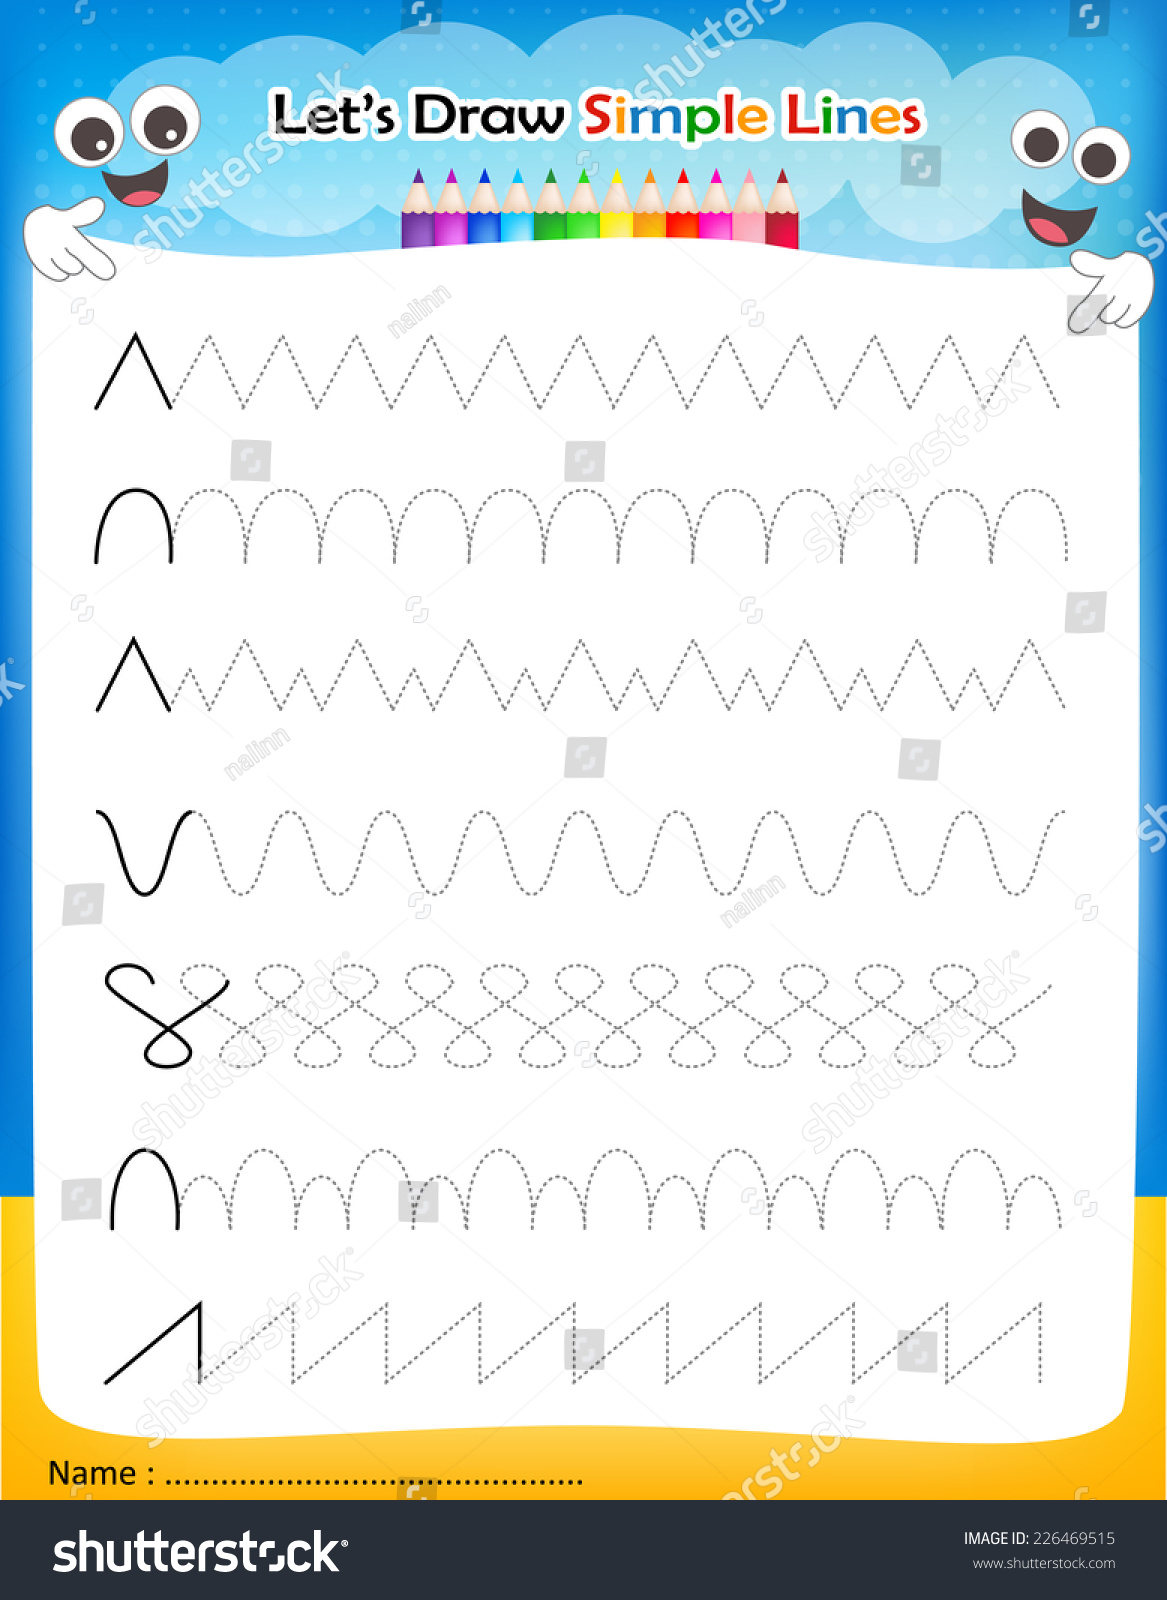 Line Drawing Kindergarten : Lets draw simple lines printable worksheet stock vector